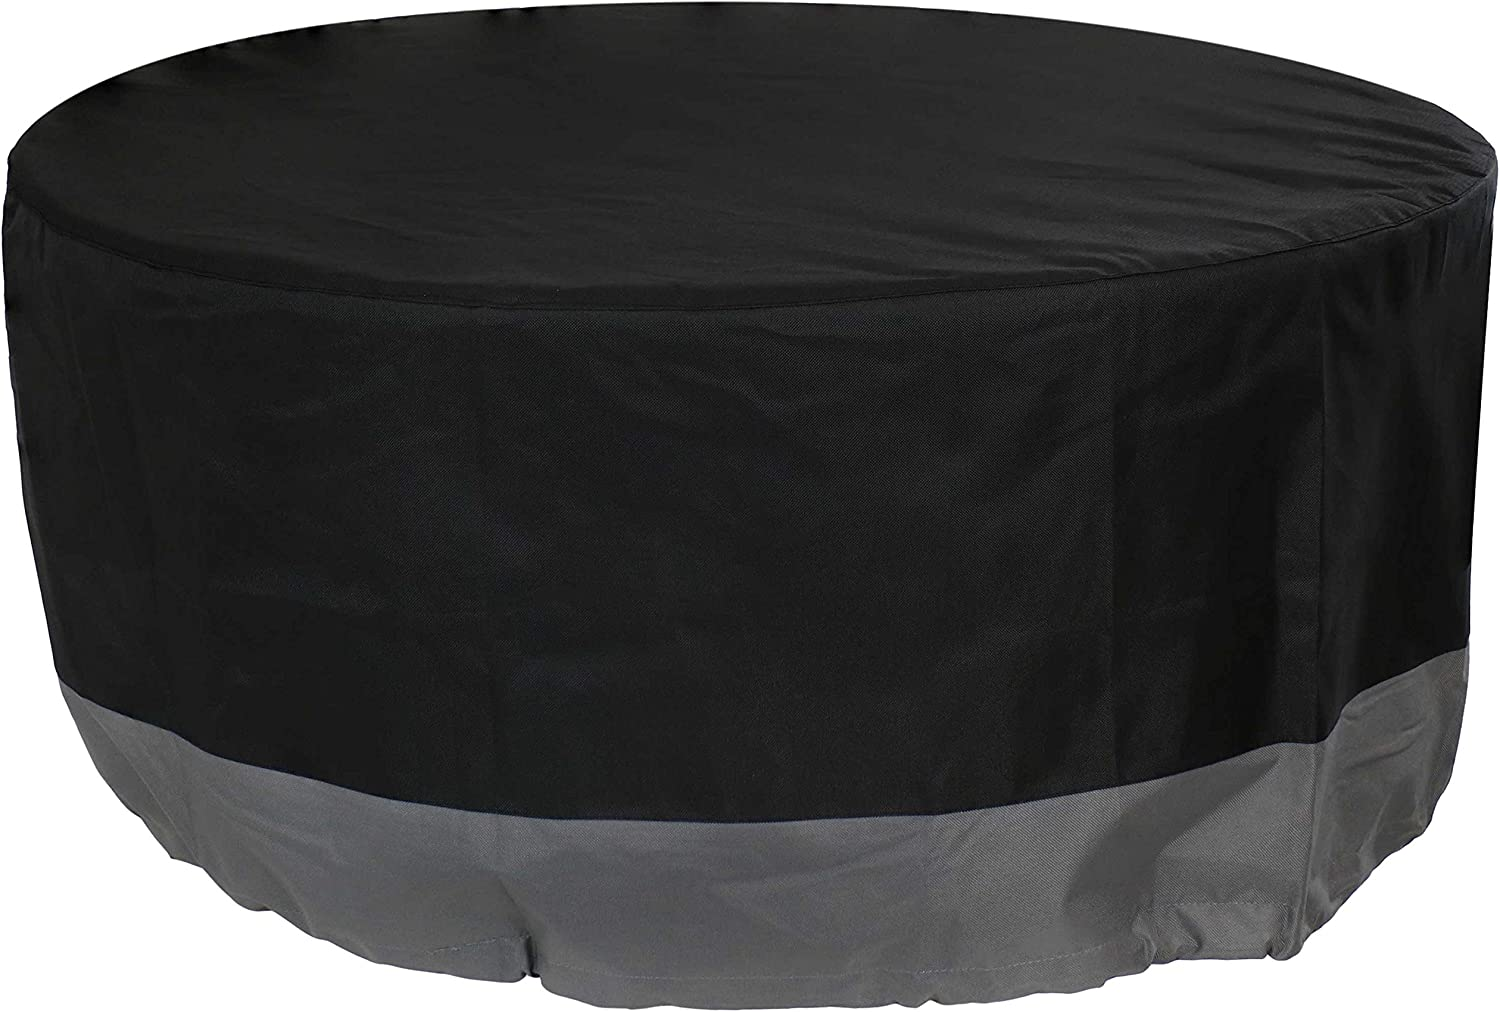 Sunnydaze Round 2-Tone Outdoor Fire Pit Cover - Gray/Black - Heavy Duty 300D Polyester Exterior Circular Winter Cover for Fire Pit - Waterproof and UV-Resistant - 40-Inch x 18-Inch